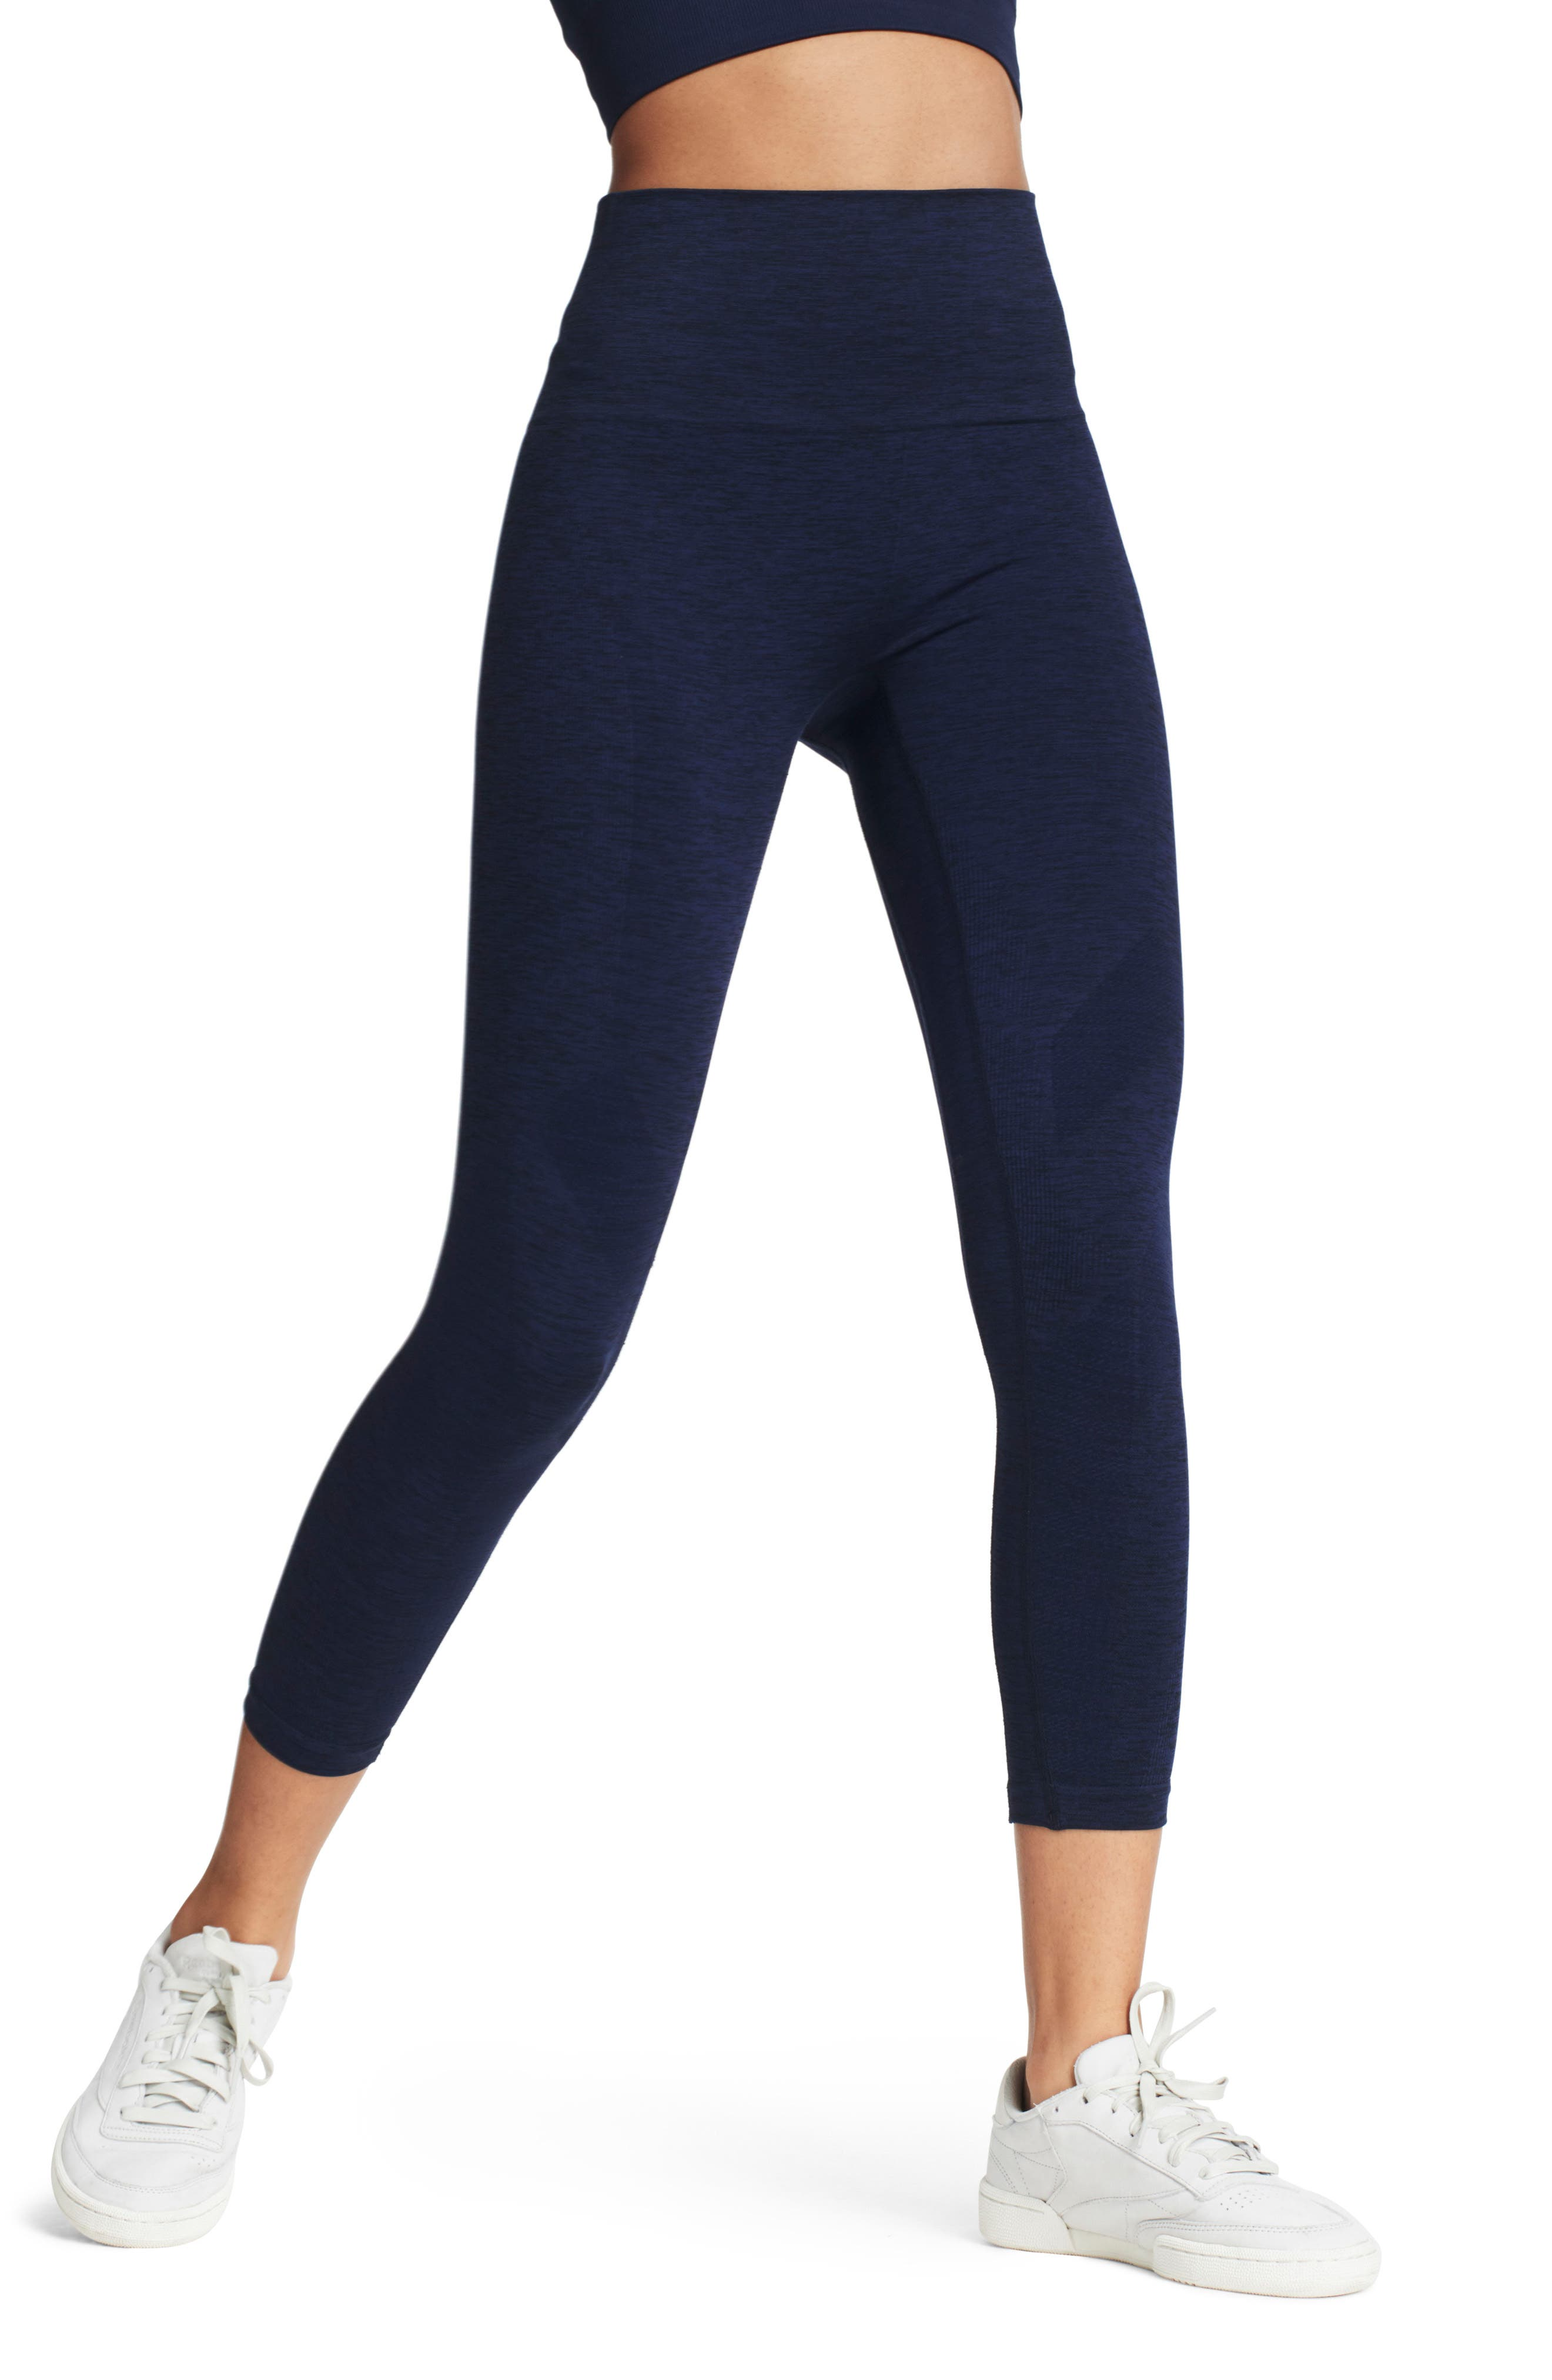 Six Eight High Waist Crop Leggings,                         Main,                         color, 400